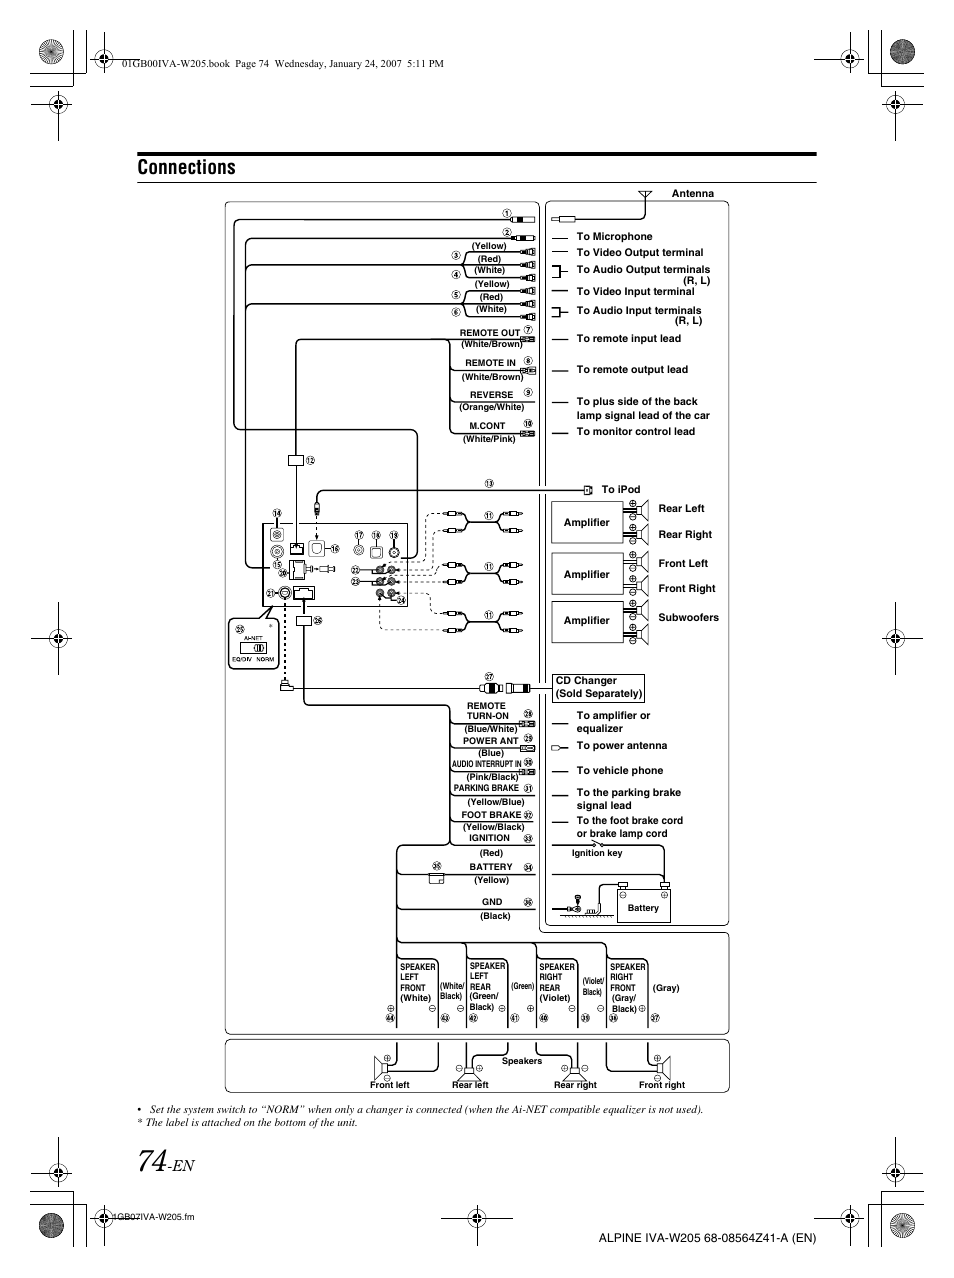 medium resolution of iva w205 wiring wiring diagram nowconnections alpine iva w205 user manual page 76 238 original cda